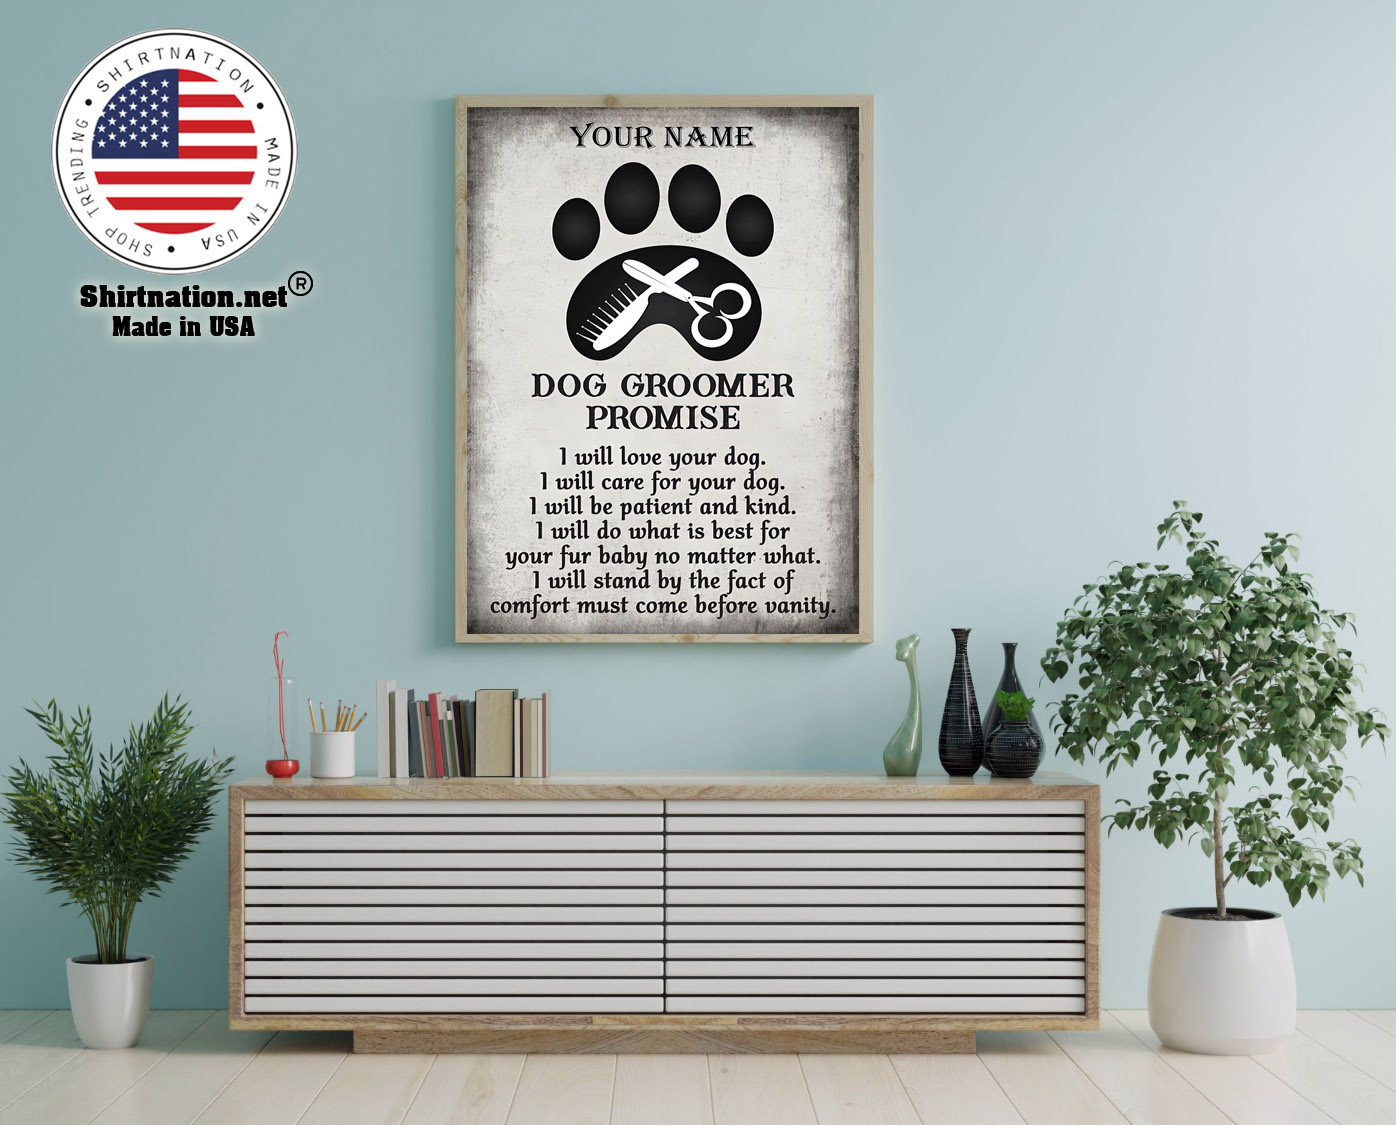 Dog groomer promise I will love your dog I will care for your dog custom name poster 12